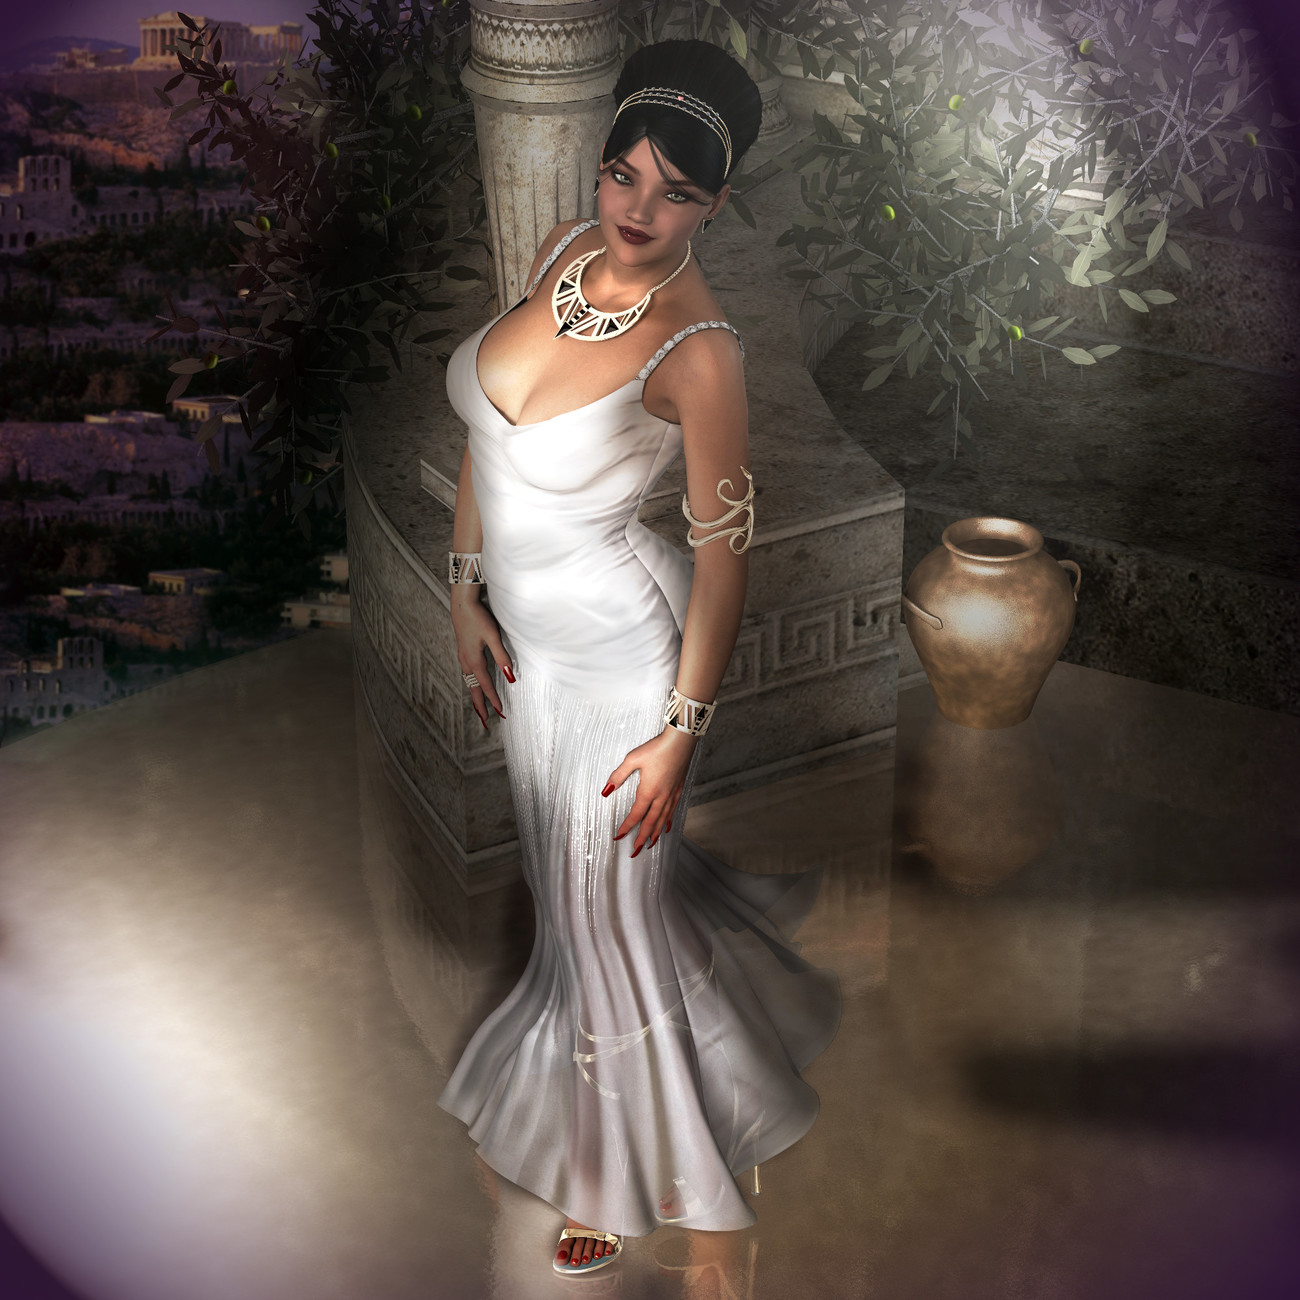 Rendo2014 Miss Greece - Gown by -renapd-